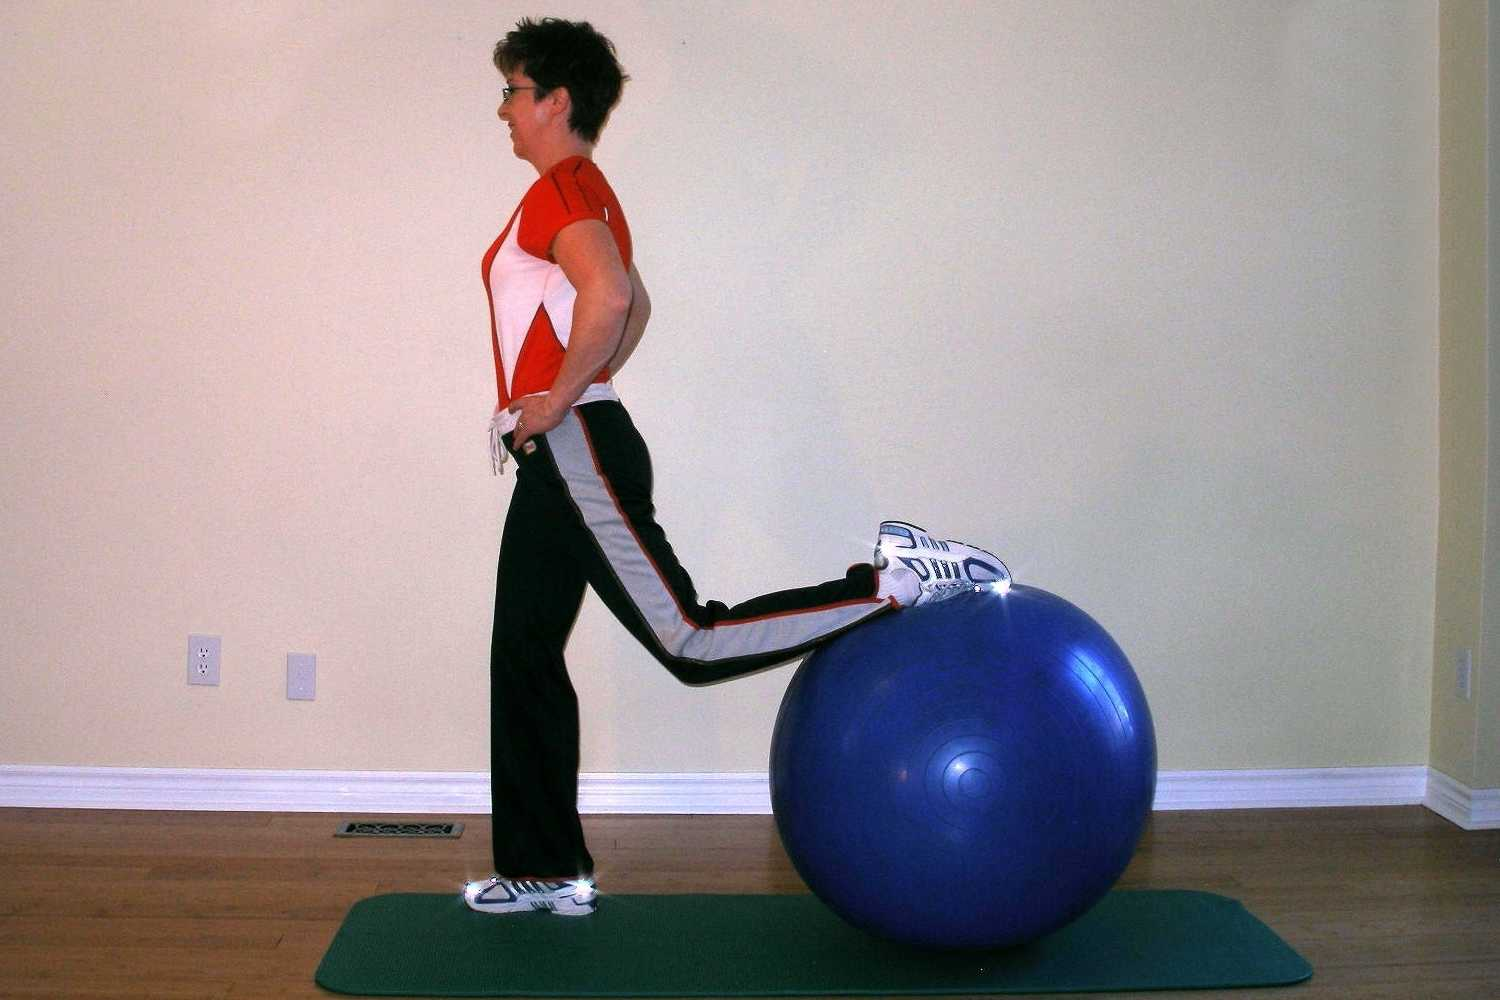 lunge exercise using a ball start